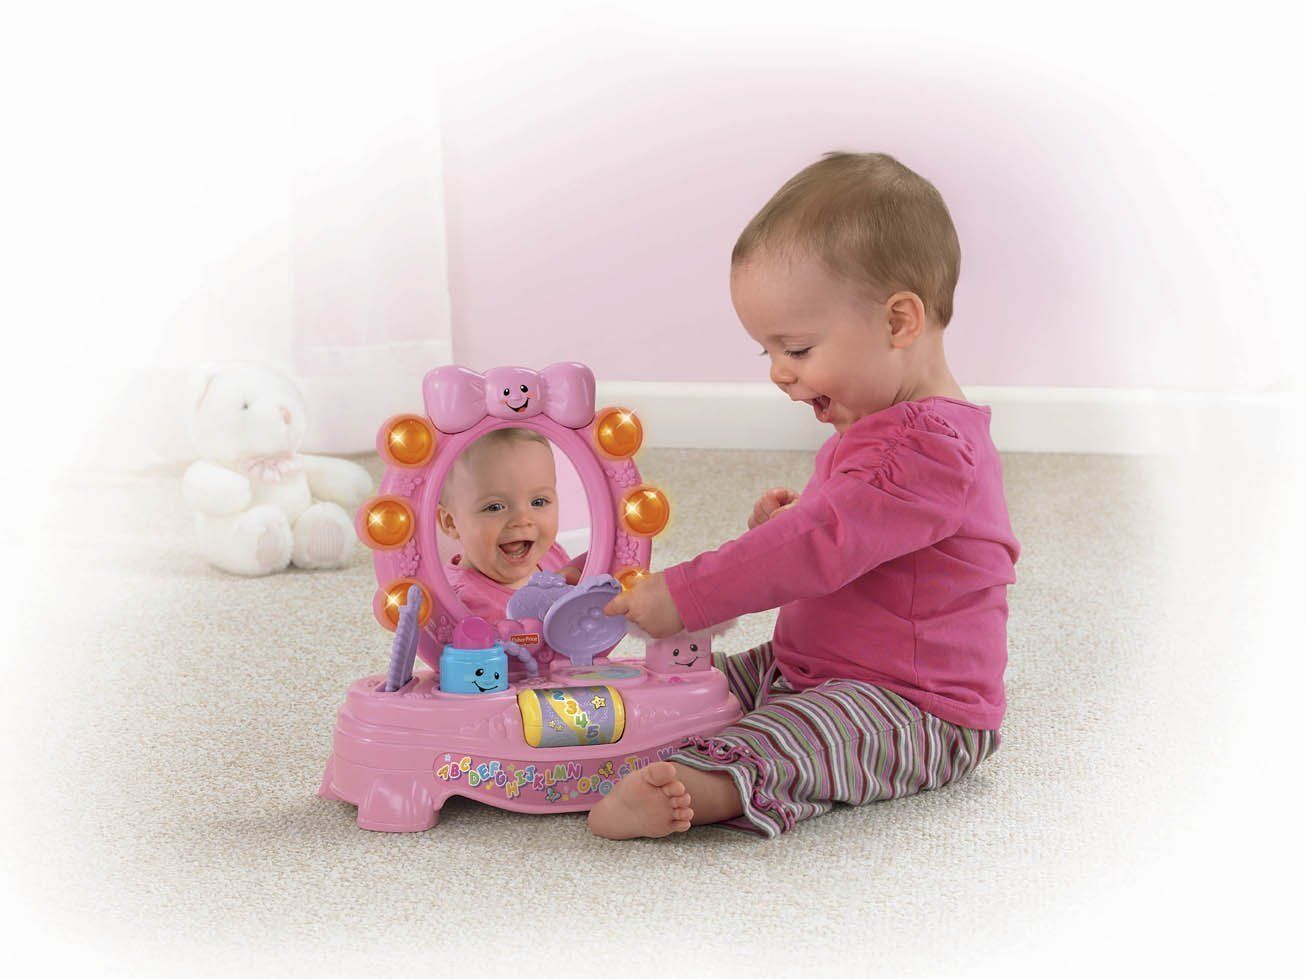 Best Toys For 1 Year Old Girls  Toys For 1 Year Old -1476